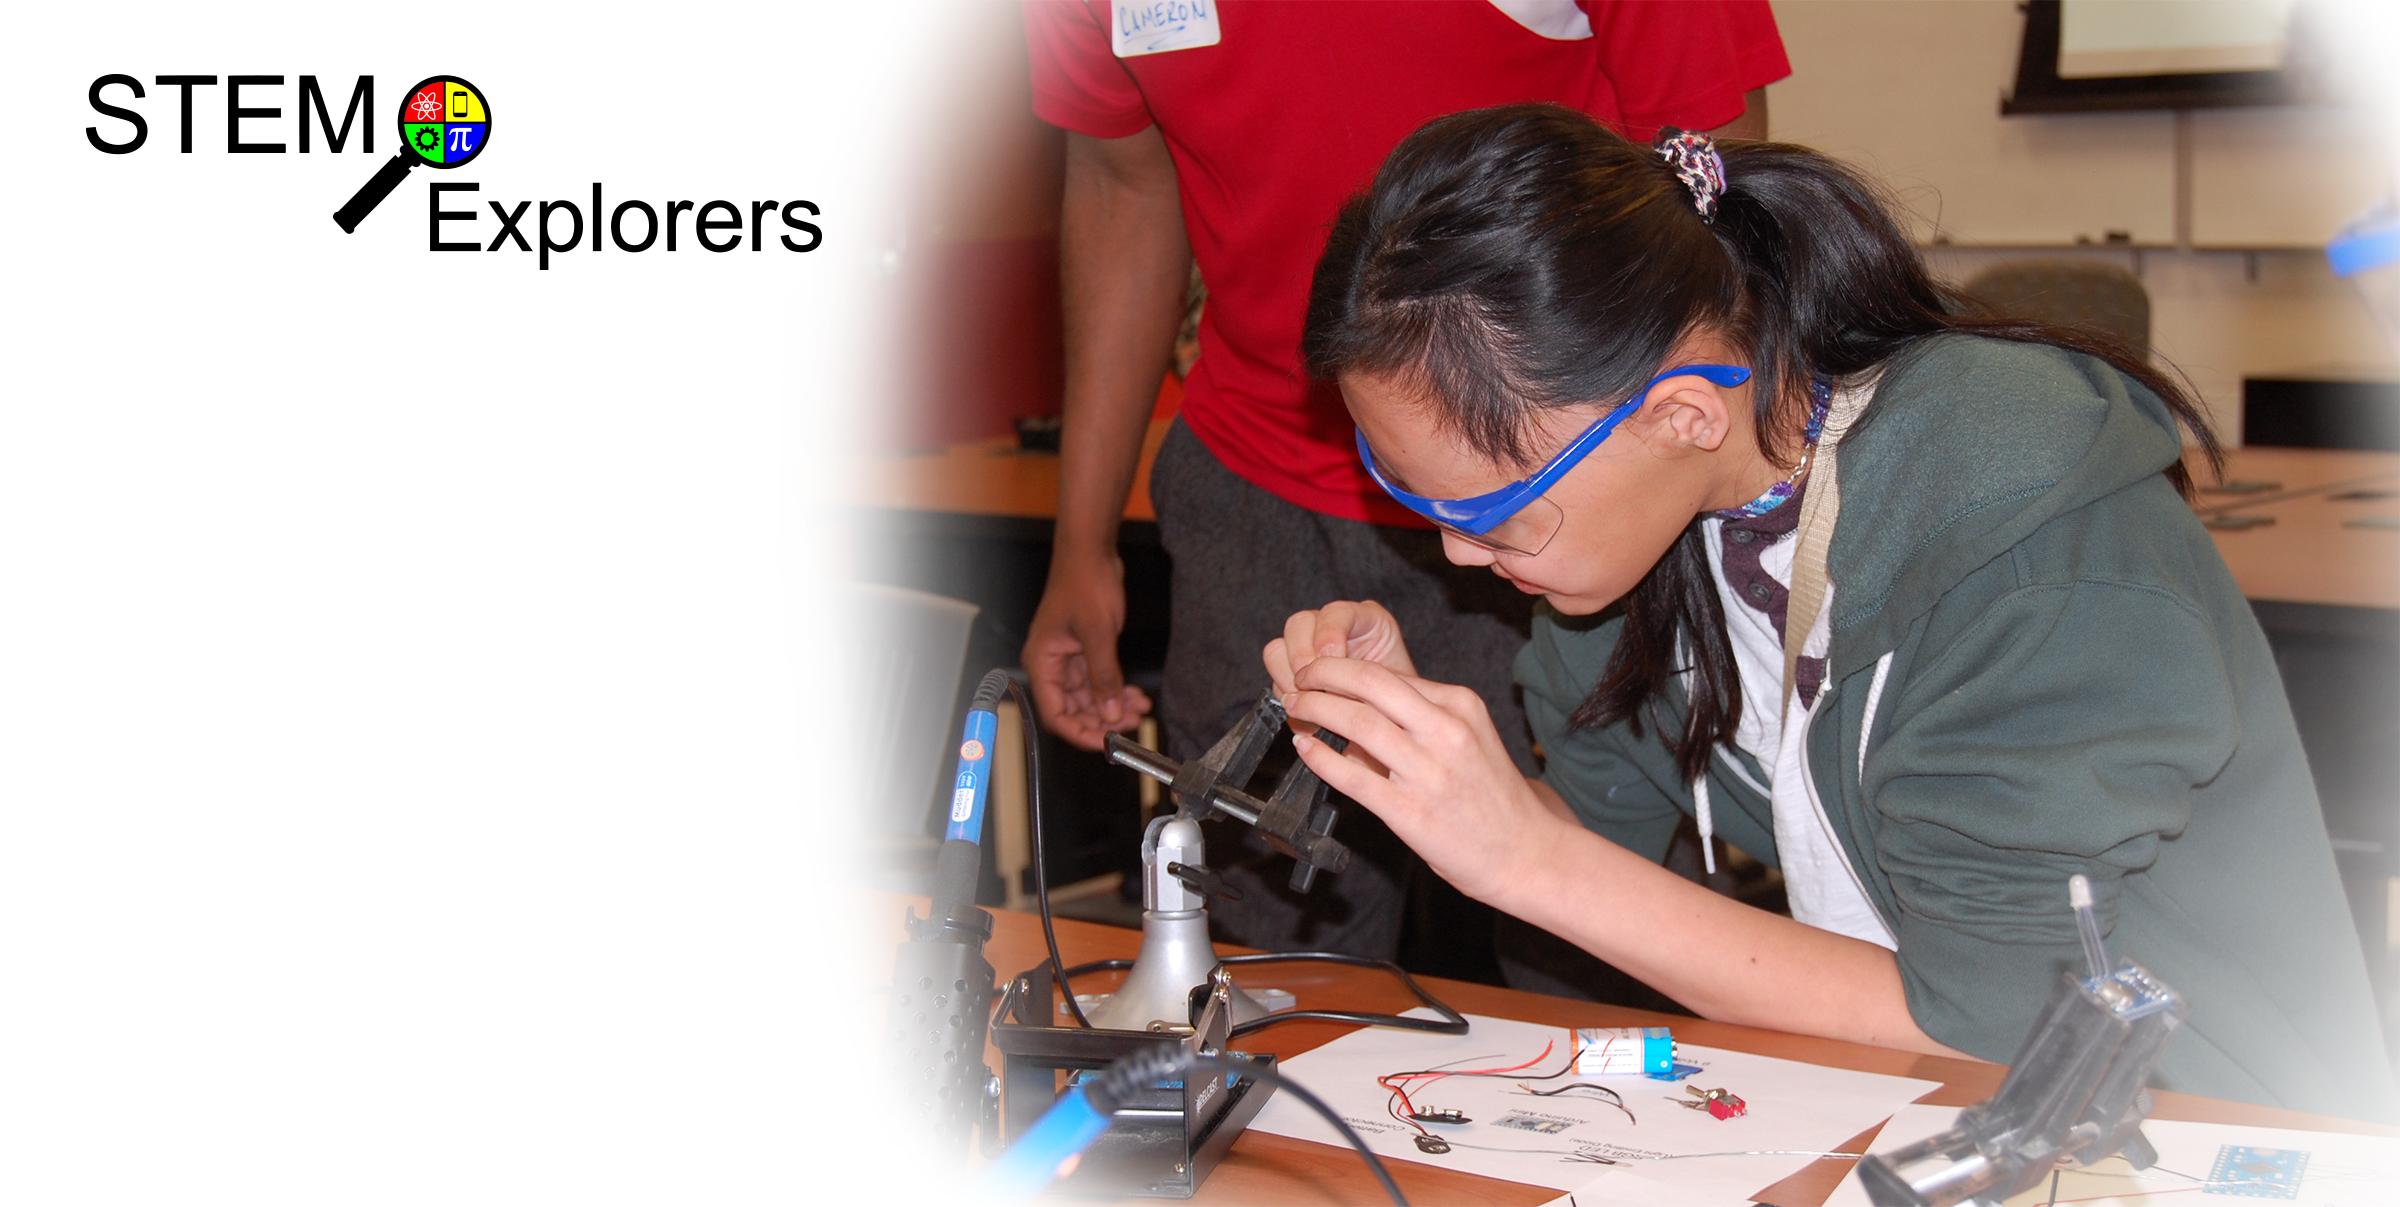 STEM Explorers Program